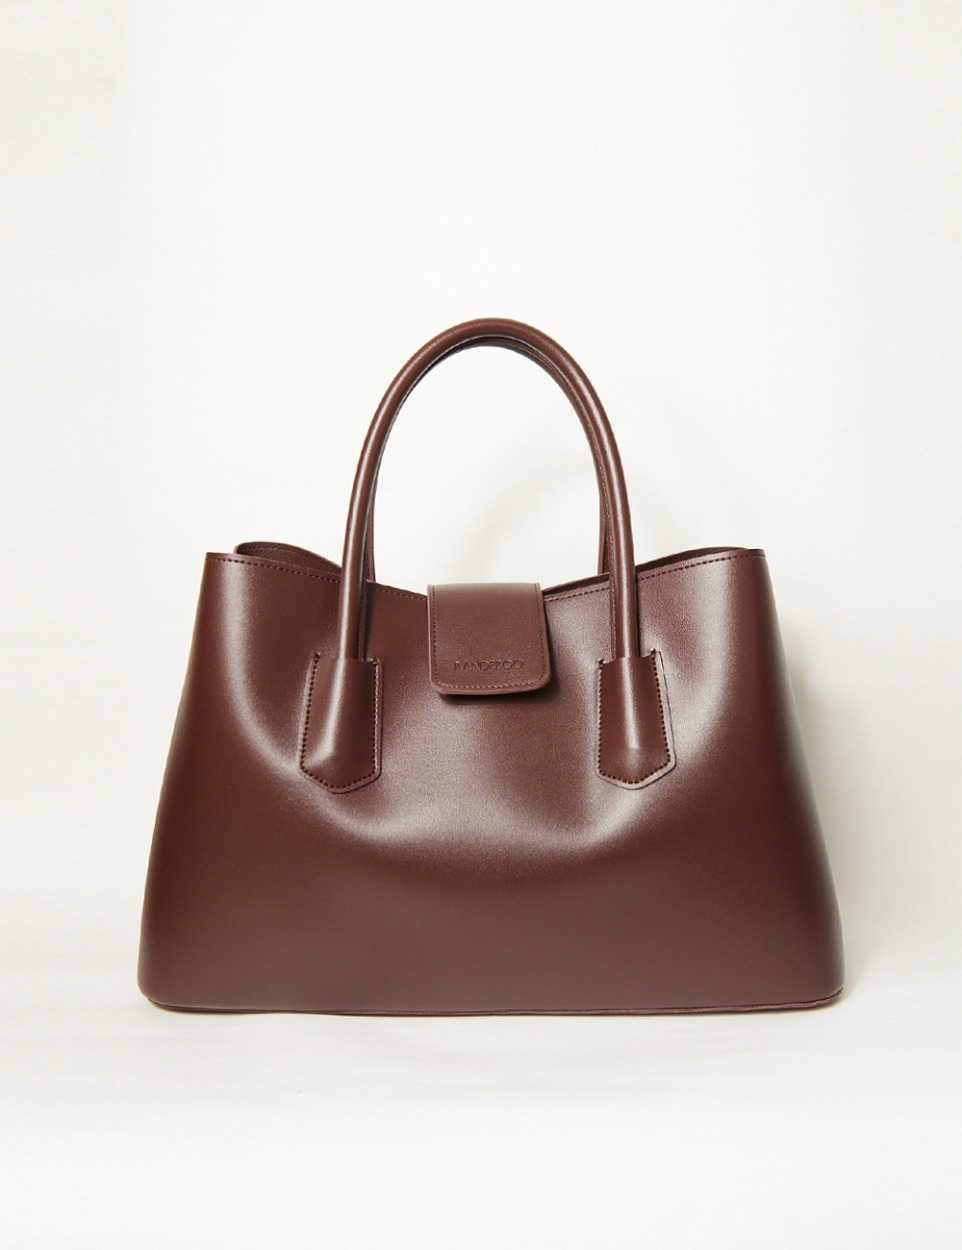 【PRE】RB classic bag (dark brown)